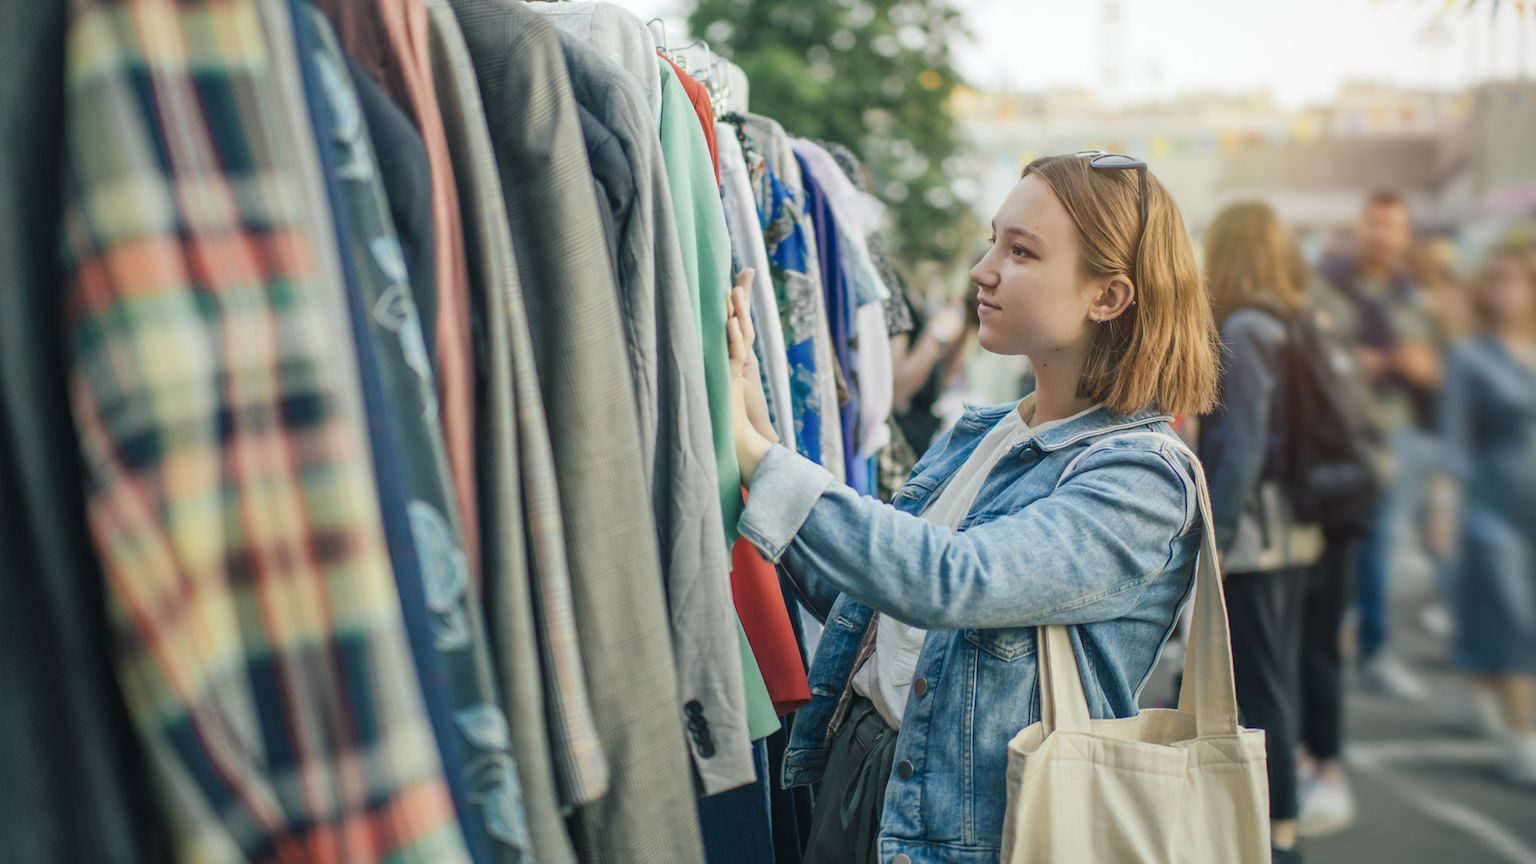 A young woman browsing a second-hand clothing rack at an outdoor market